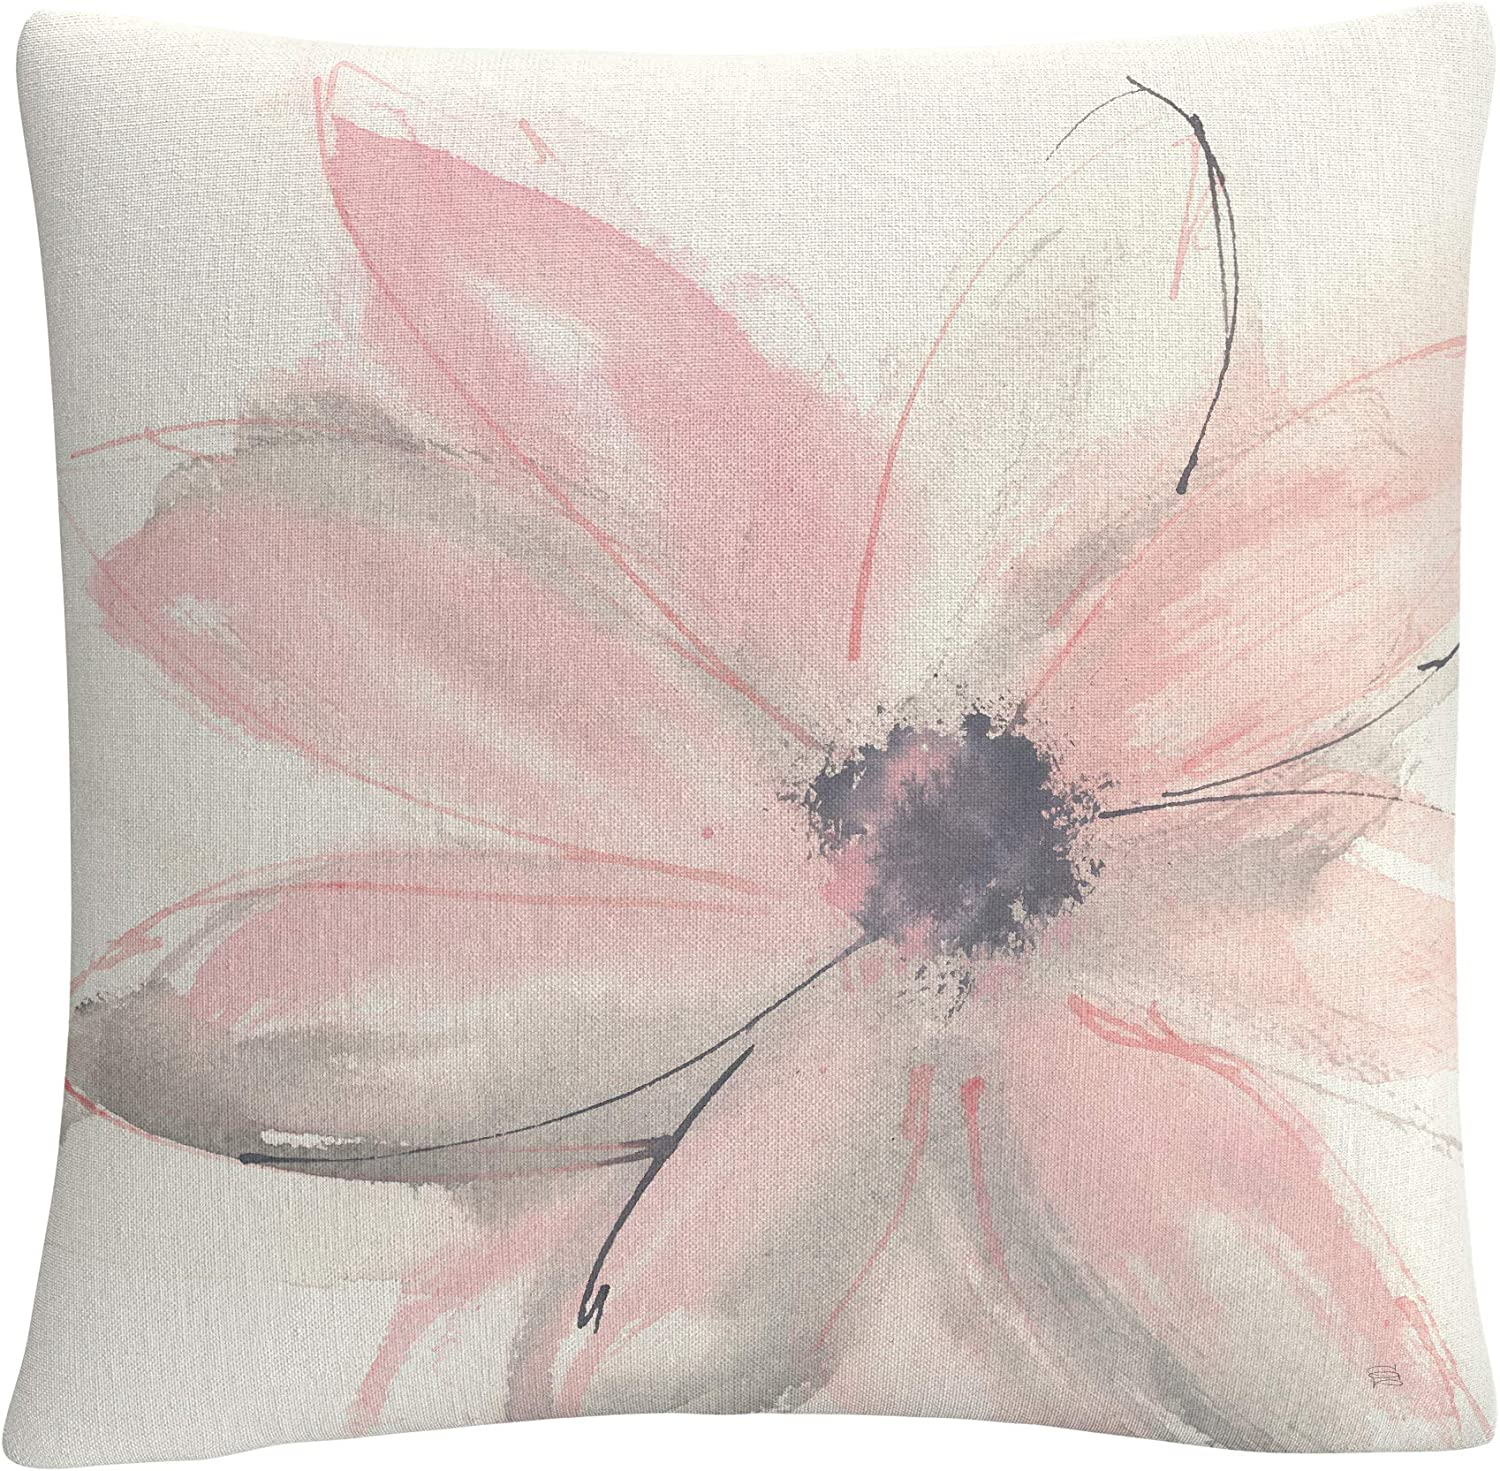 Trademark Fine Art Blush Clematis I By Chris Paschke 16x16 Decorative Throw Pillow Multicolor Home Kitchen